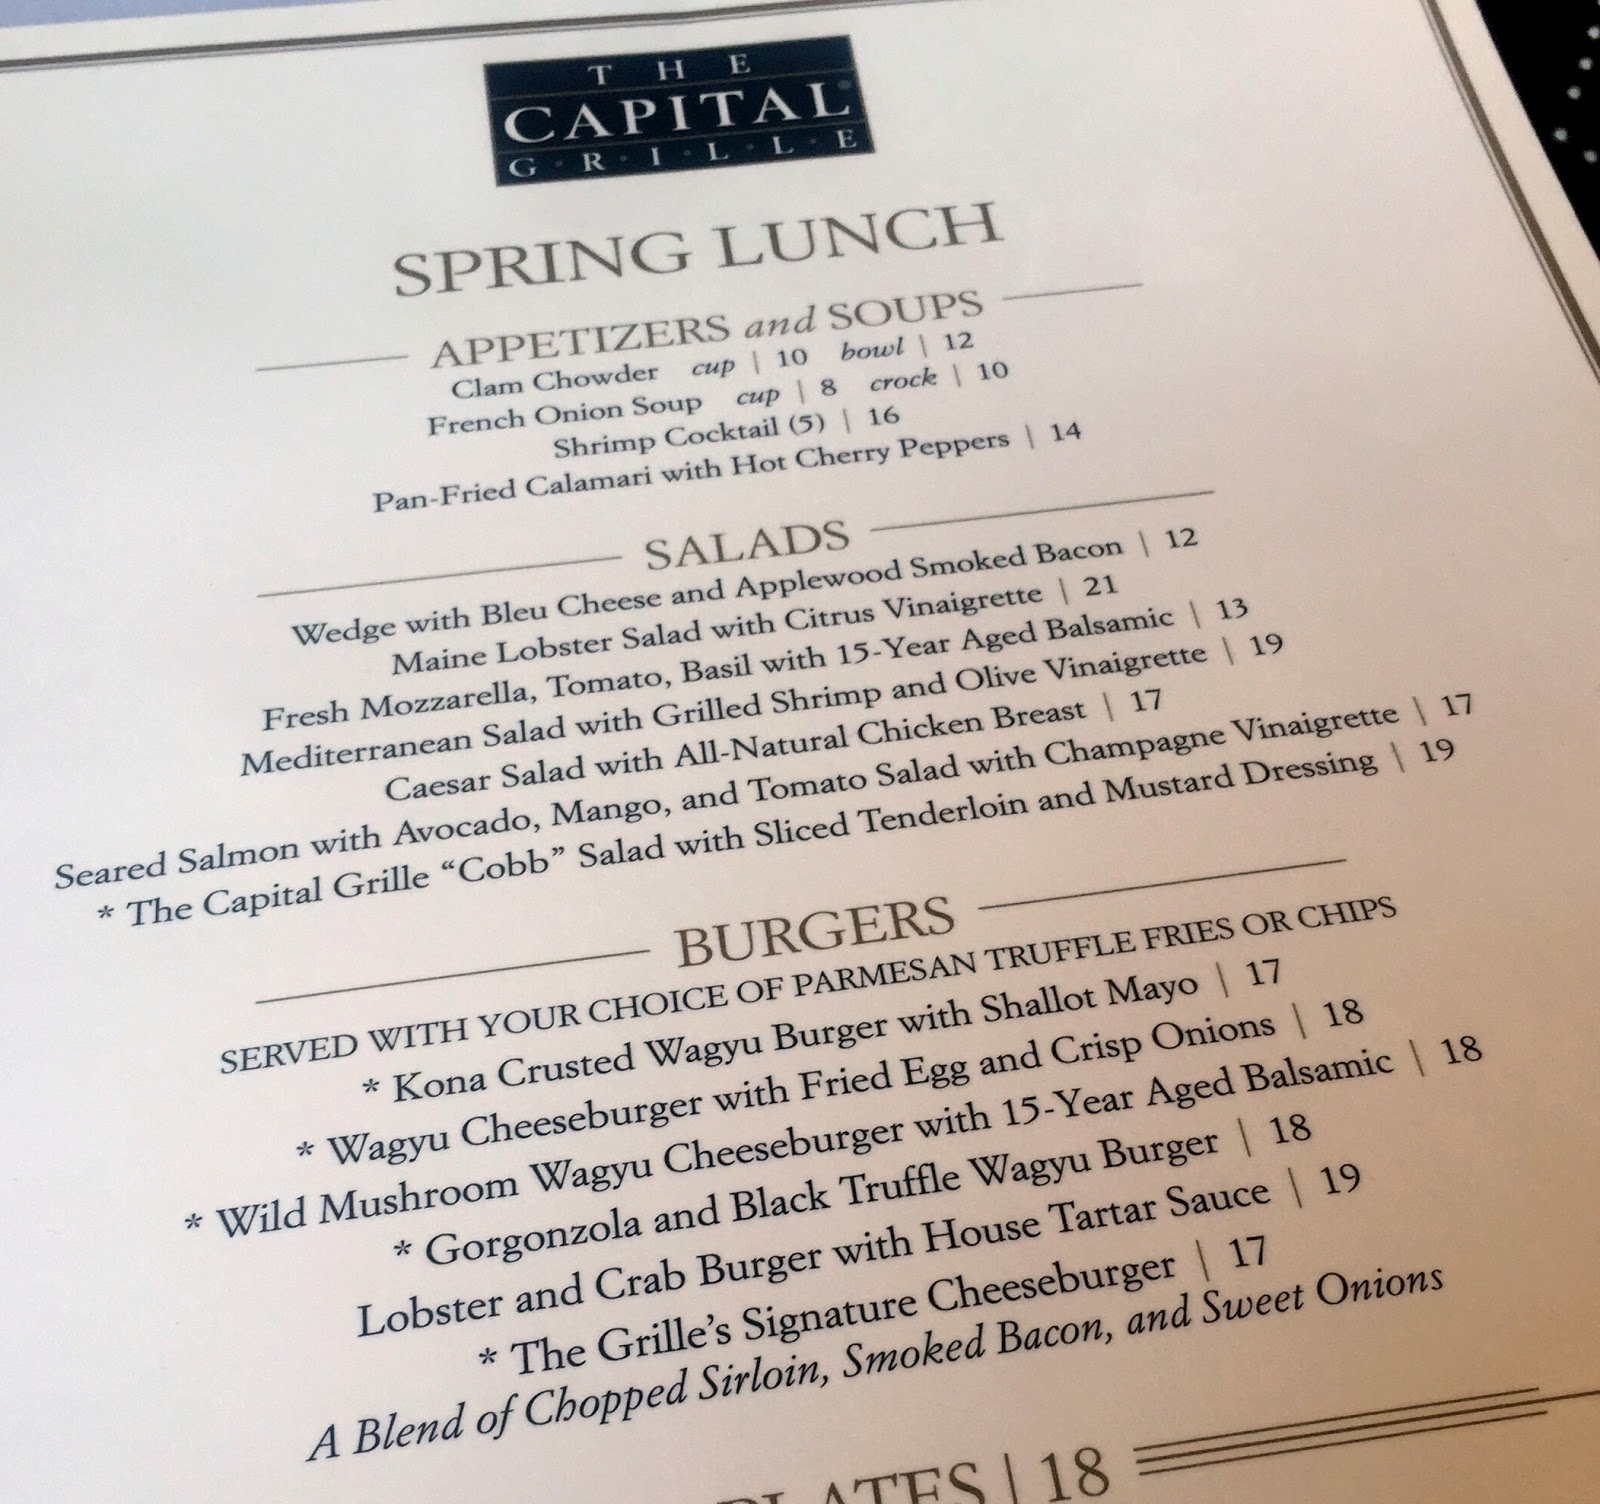 Restaurant Review: The Capital Grille   The Food Hussy!